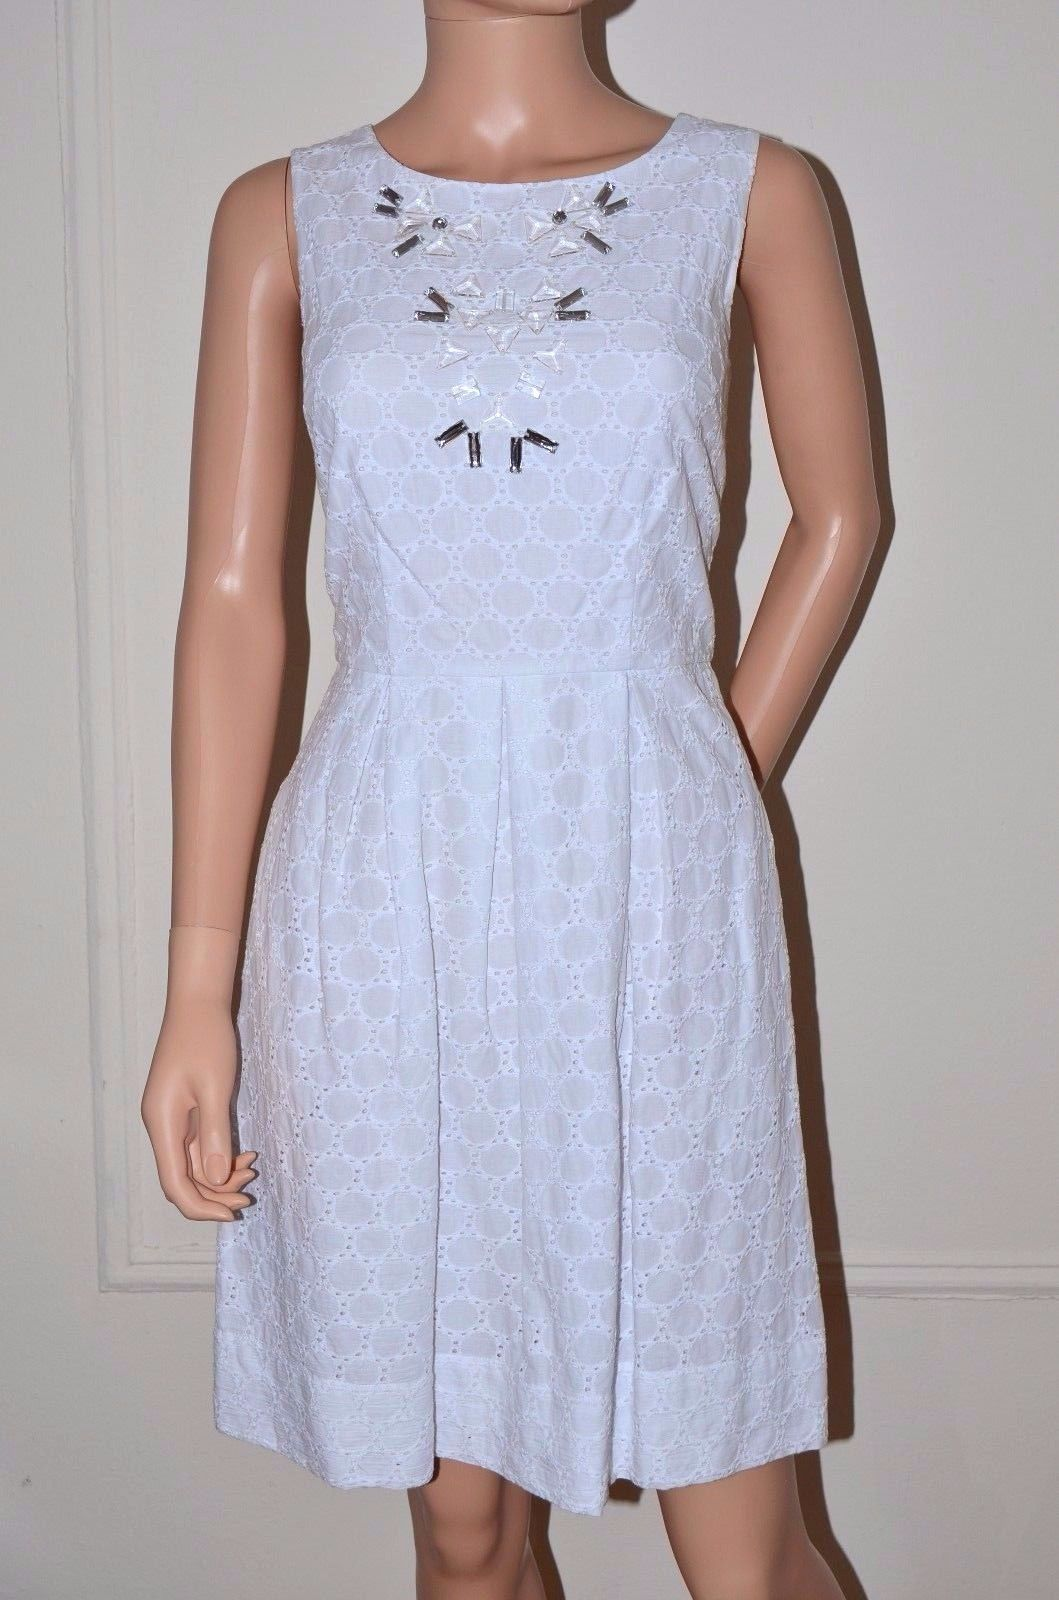 Miss Sixty M60 $128 White Eyelet Embroidered Dress White size 6 Medium M NEW a